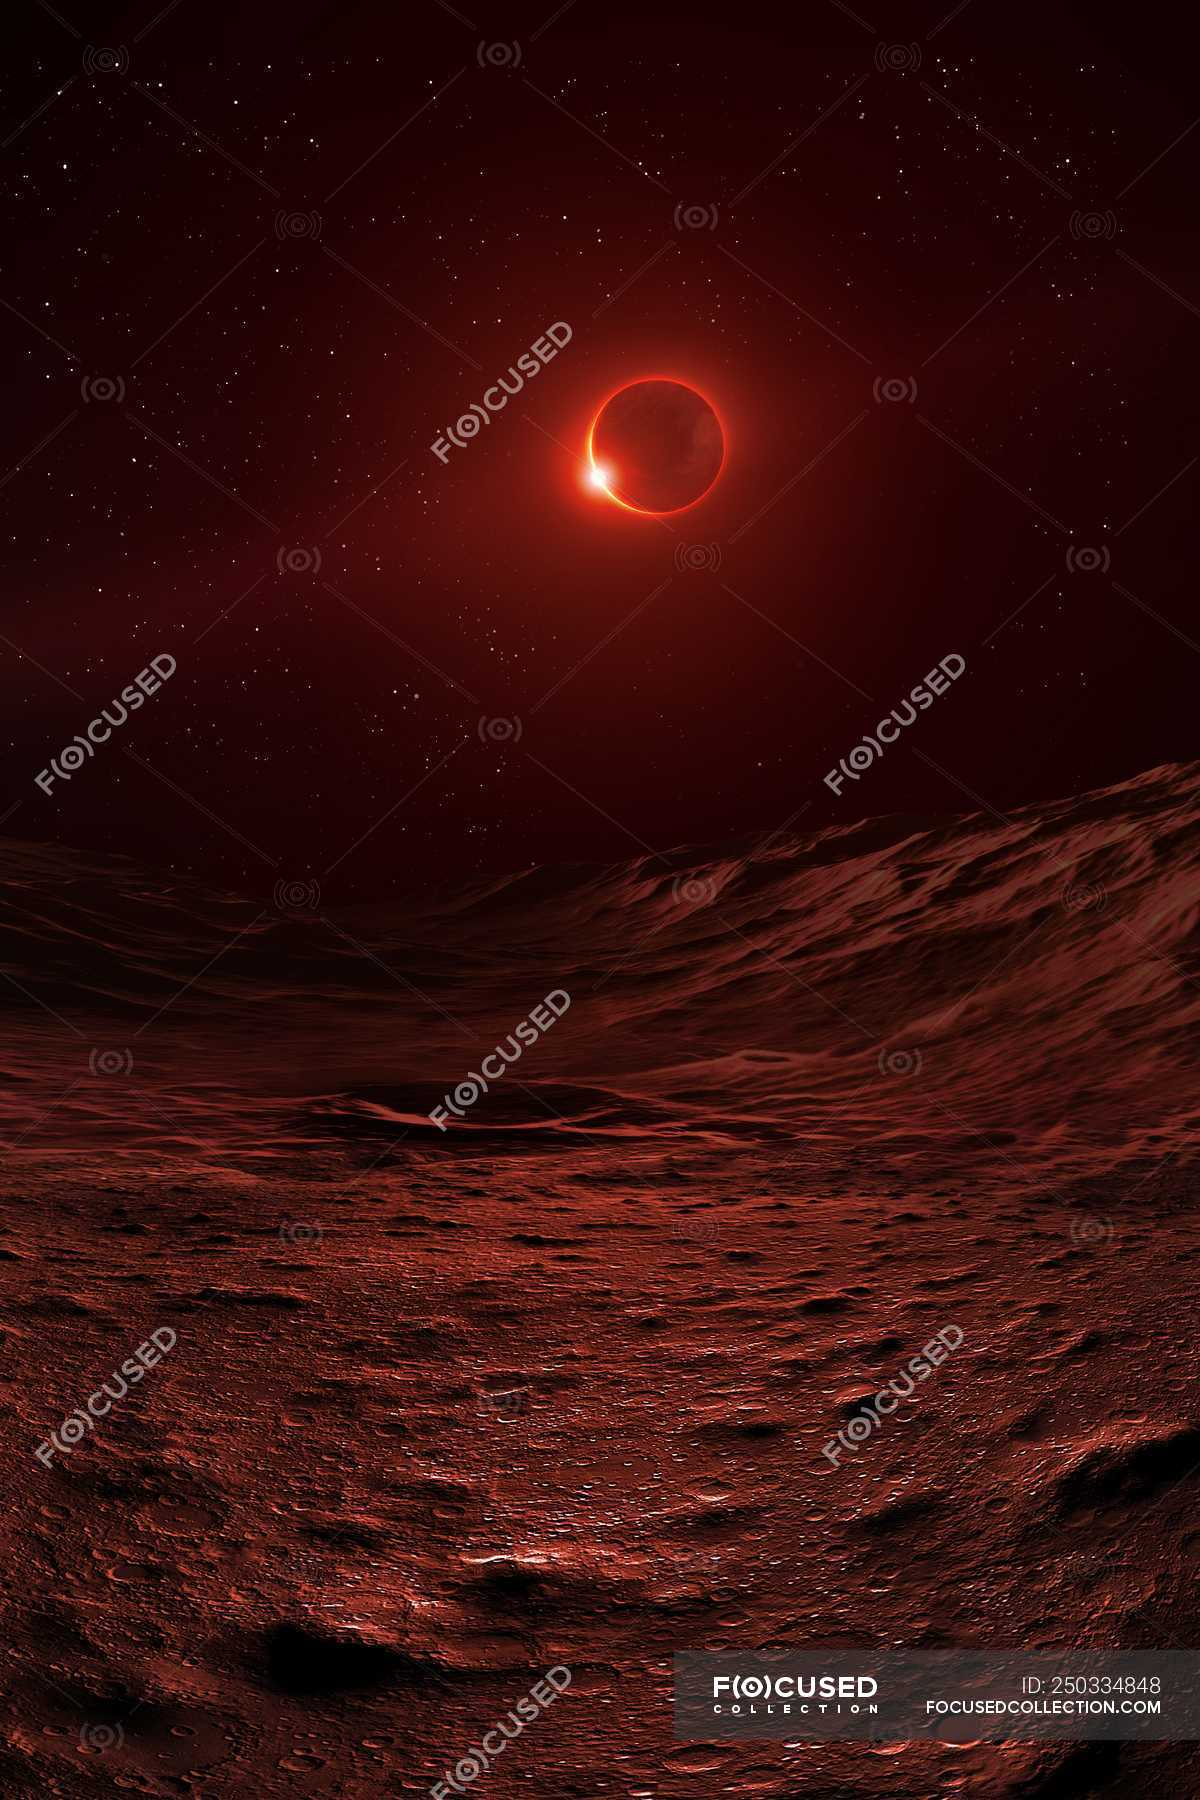 Surface Of Moon During Lunar Eclipse Sun Passing Behind Earth Illuminating Atmosphere In Eerie Red And Staining Lunar Landscape Craters Illustration Stock Photo 250334848